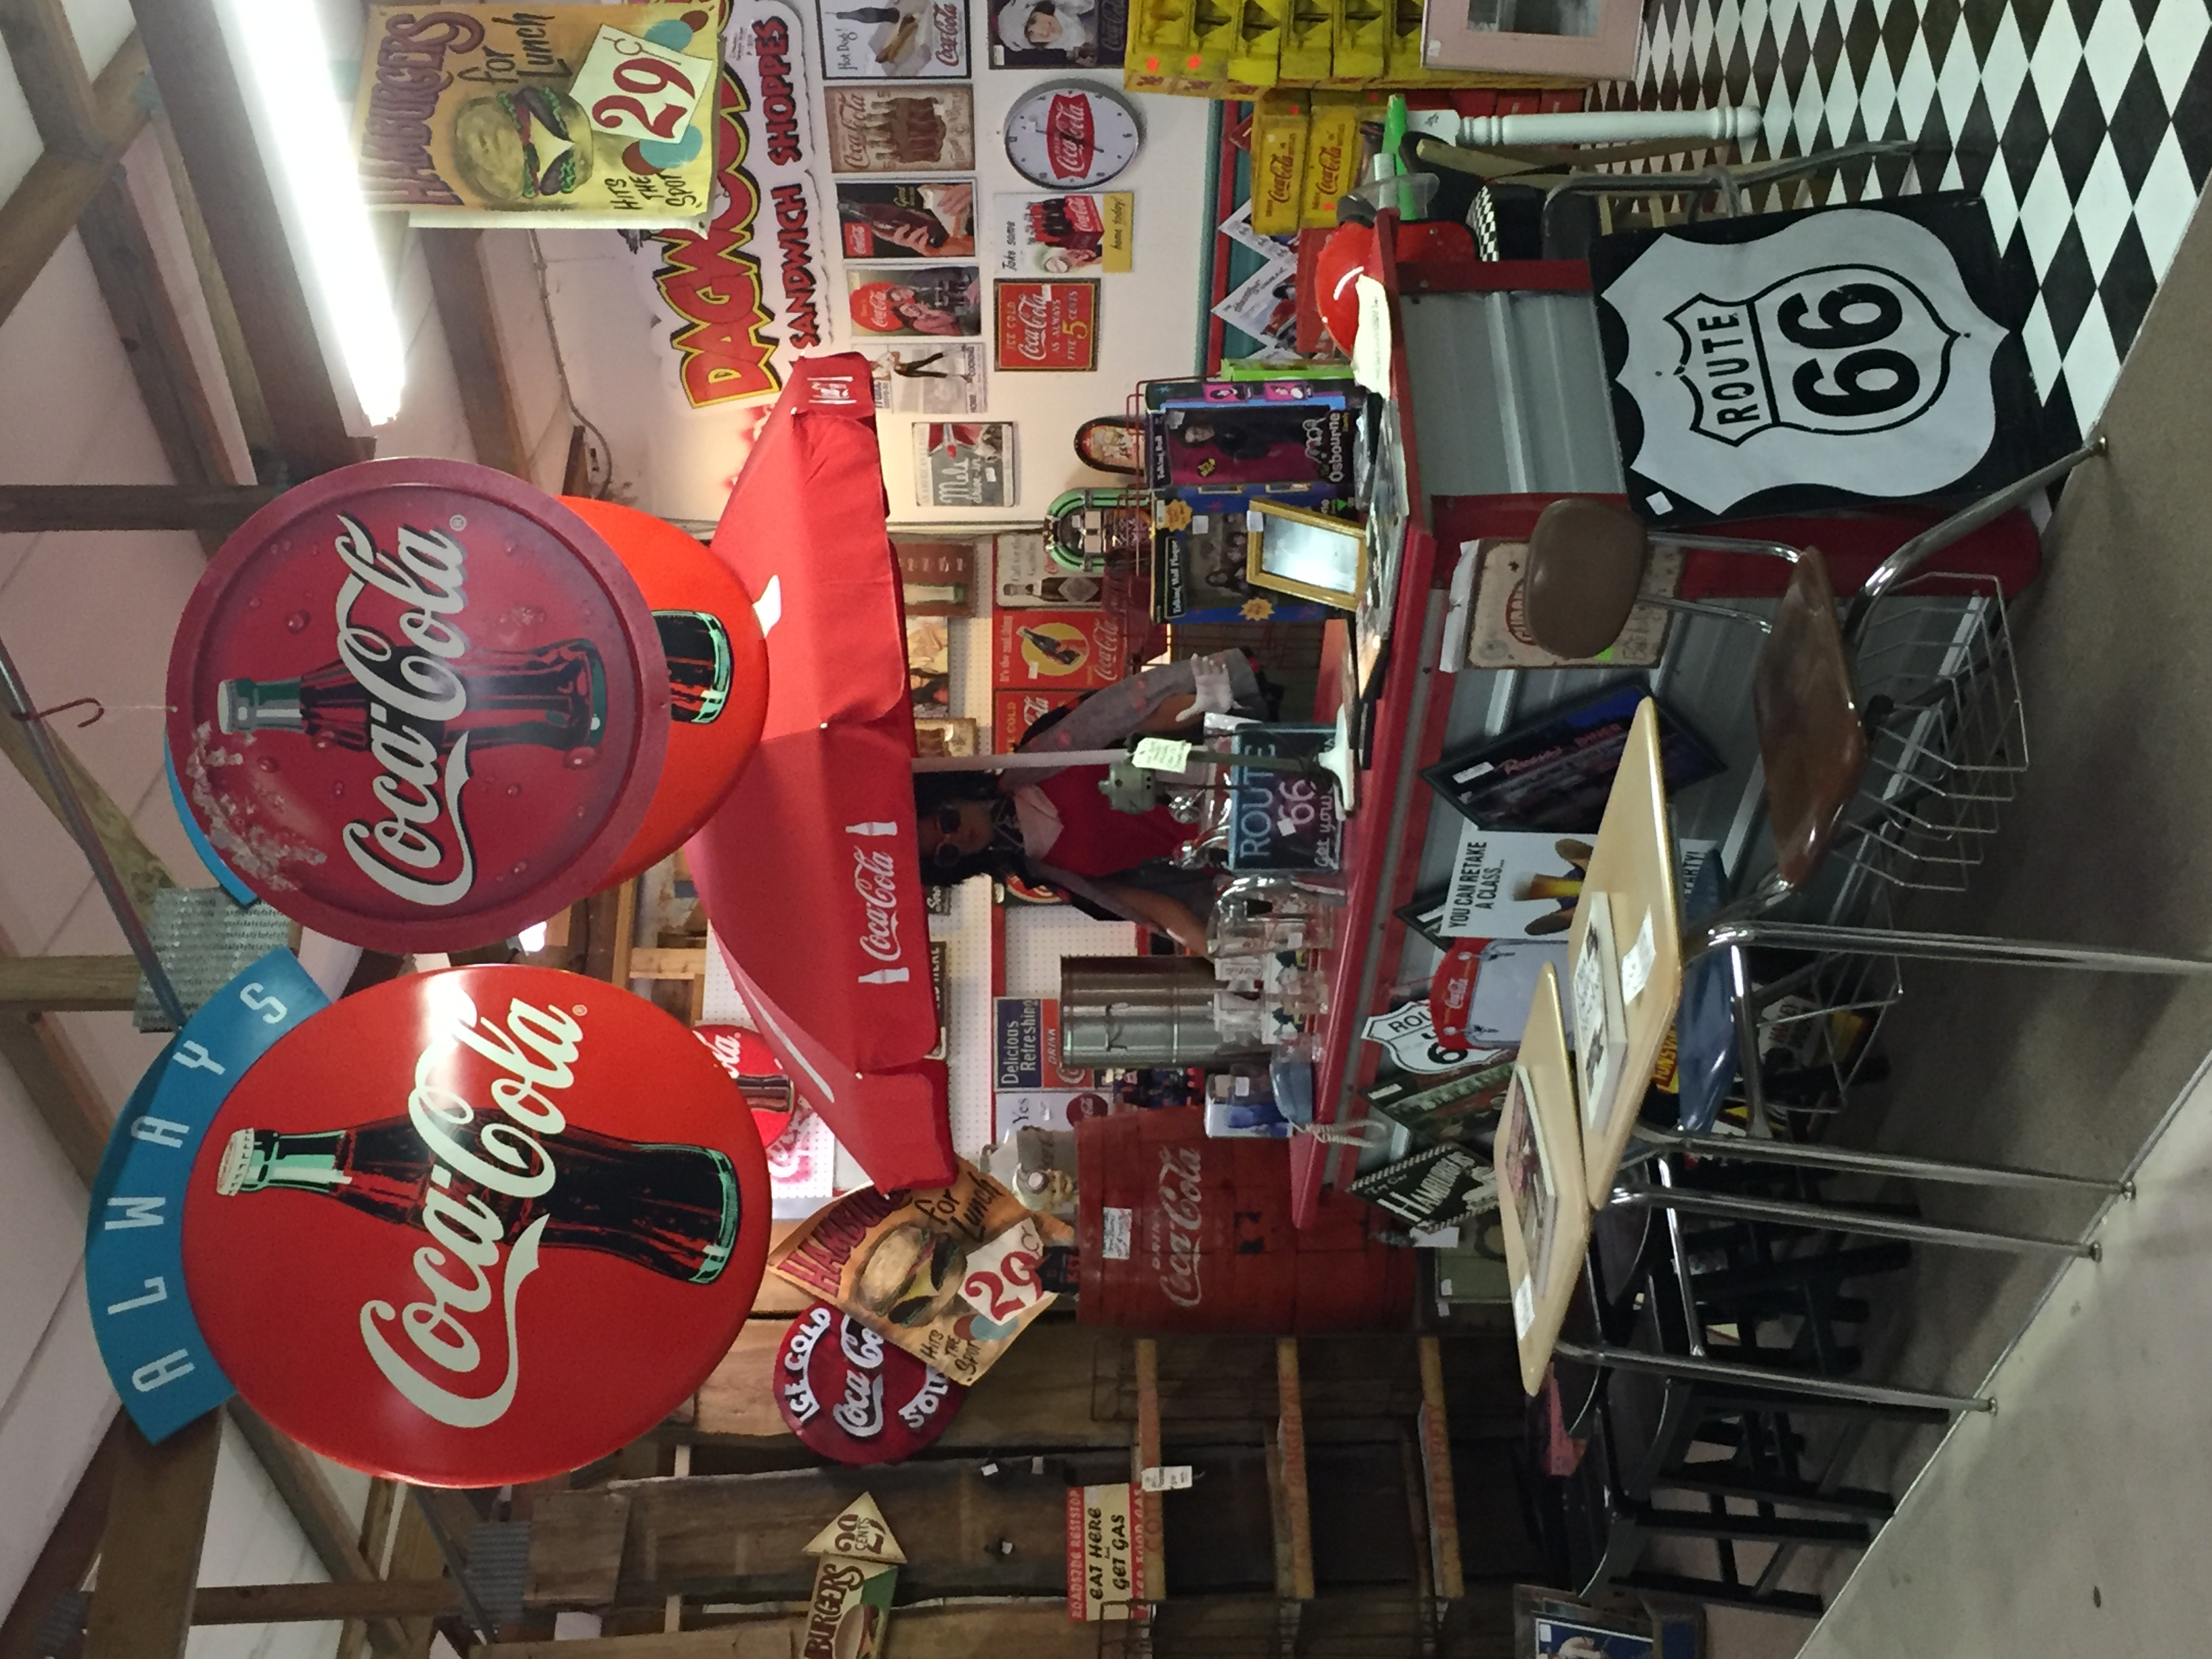 Coca-Cola, Antique, Antiques